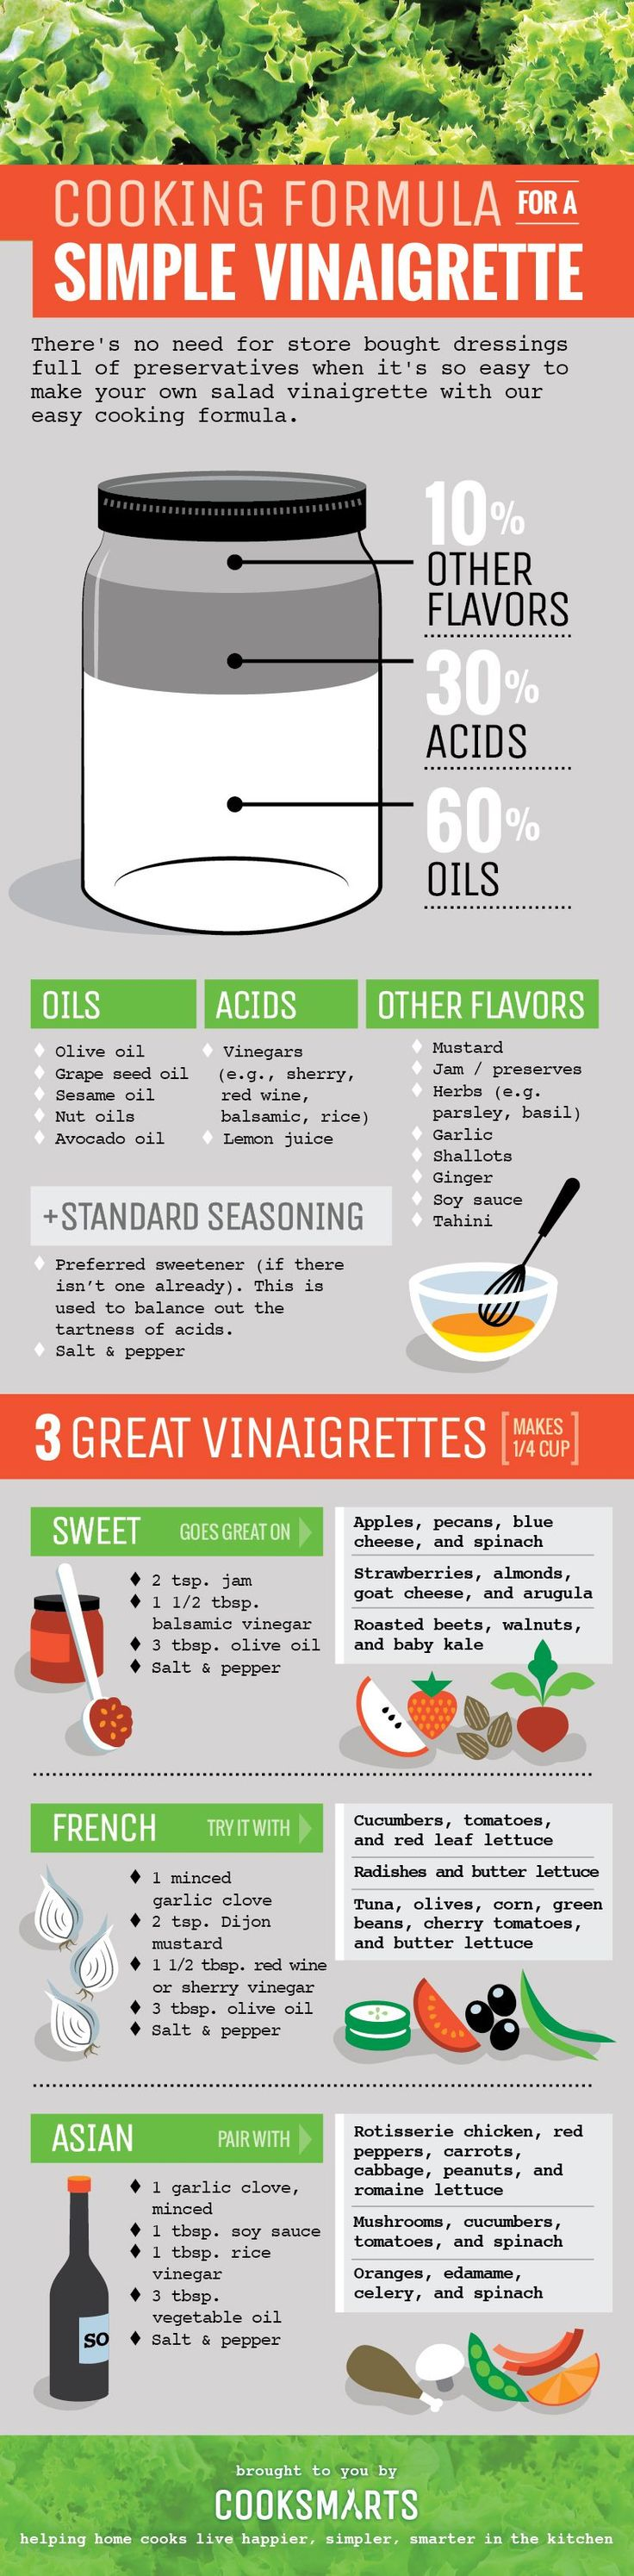 Cooking Formulas for Salad Vinaigrettes » I was just wondering the ratios yesterday, so handy!